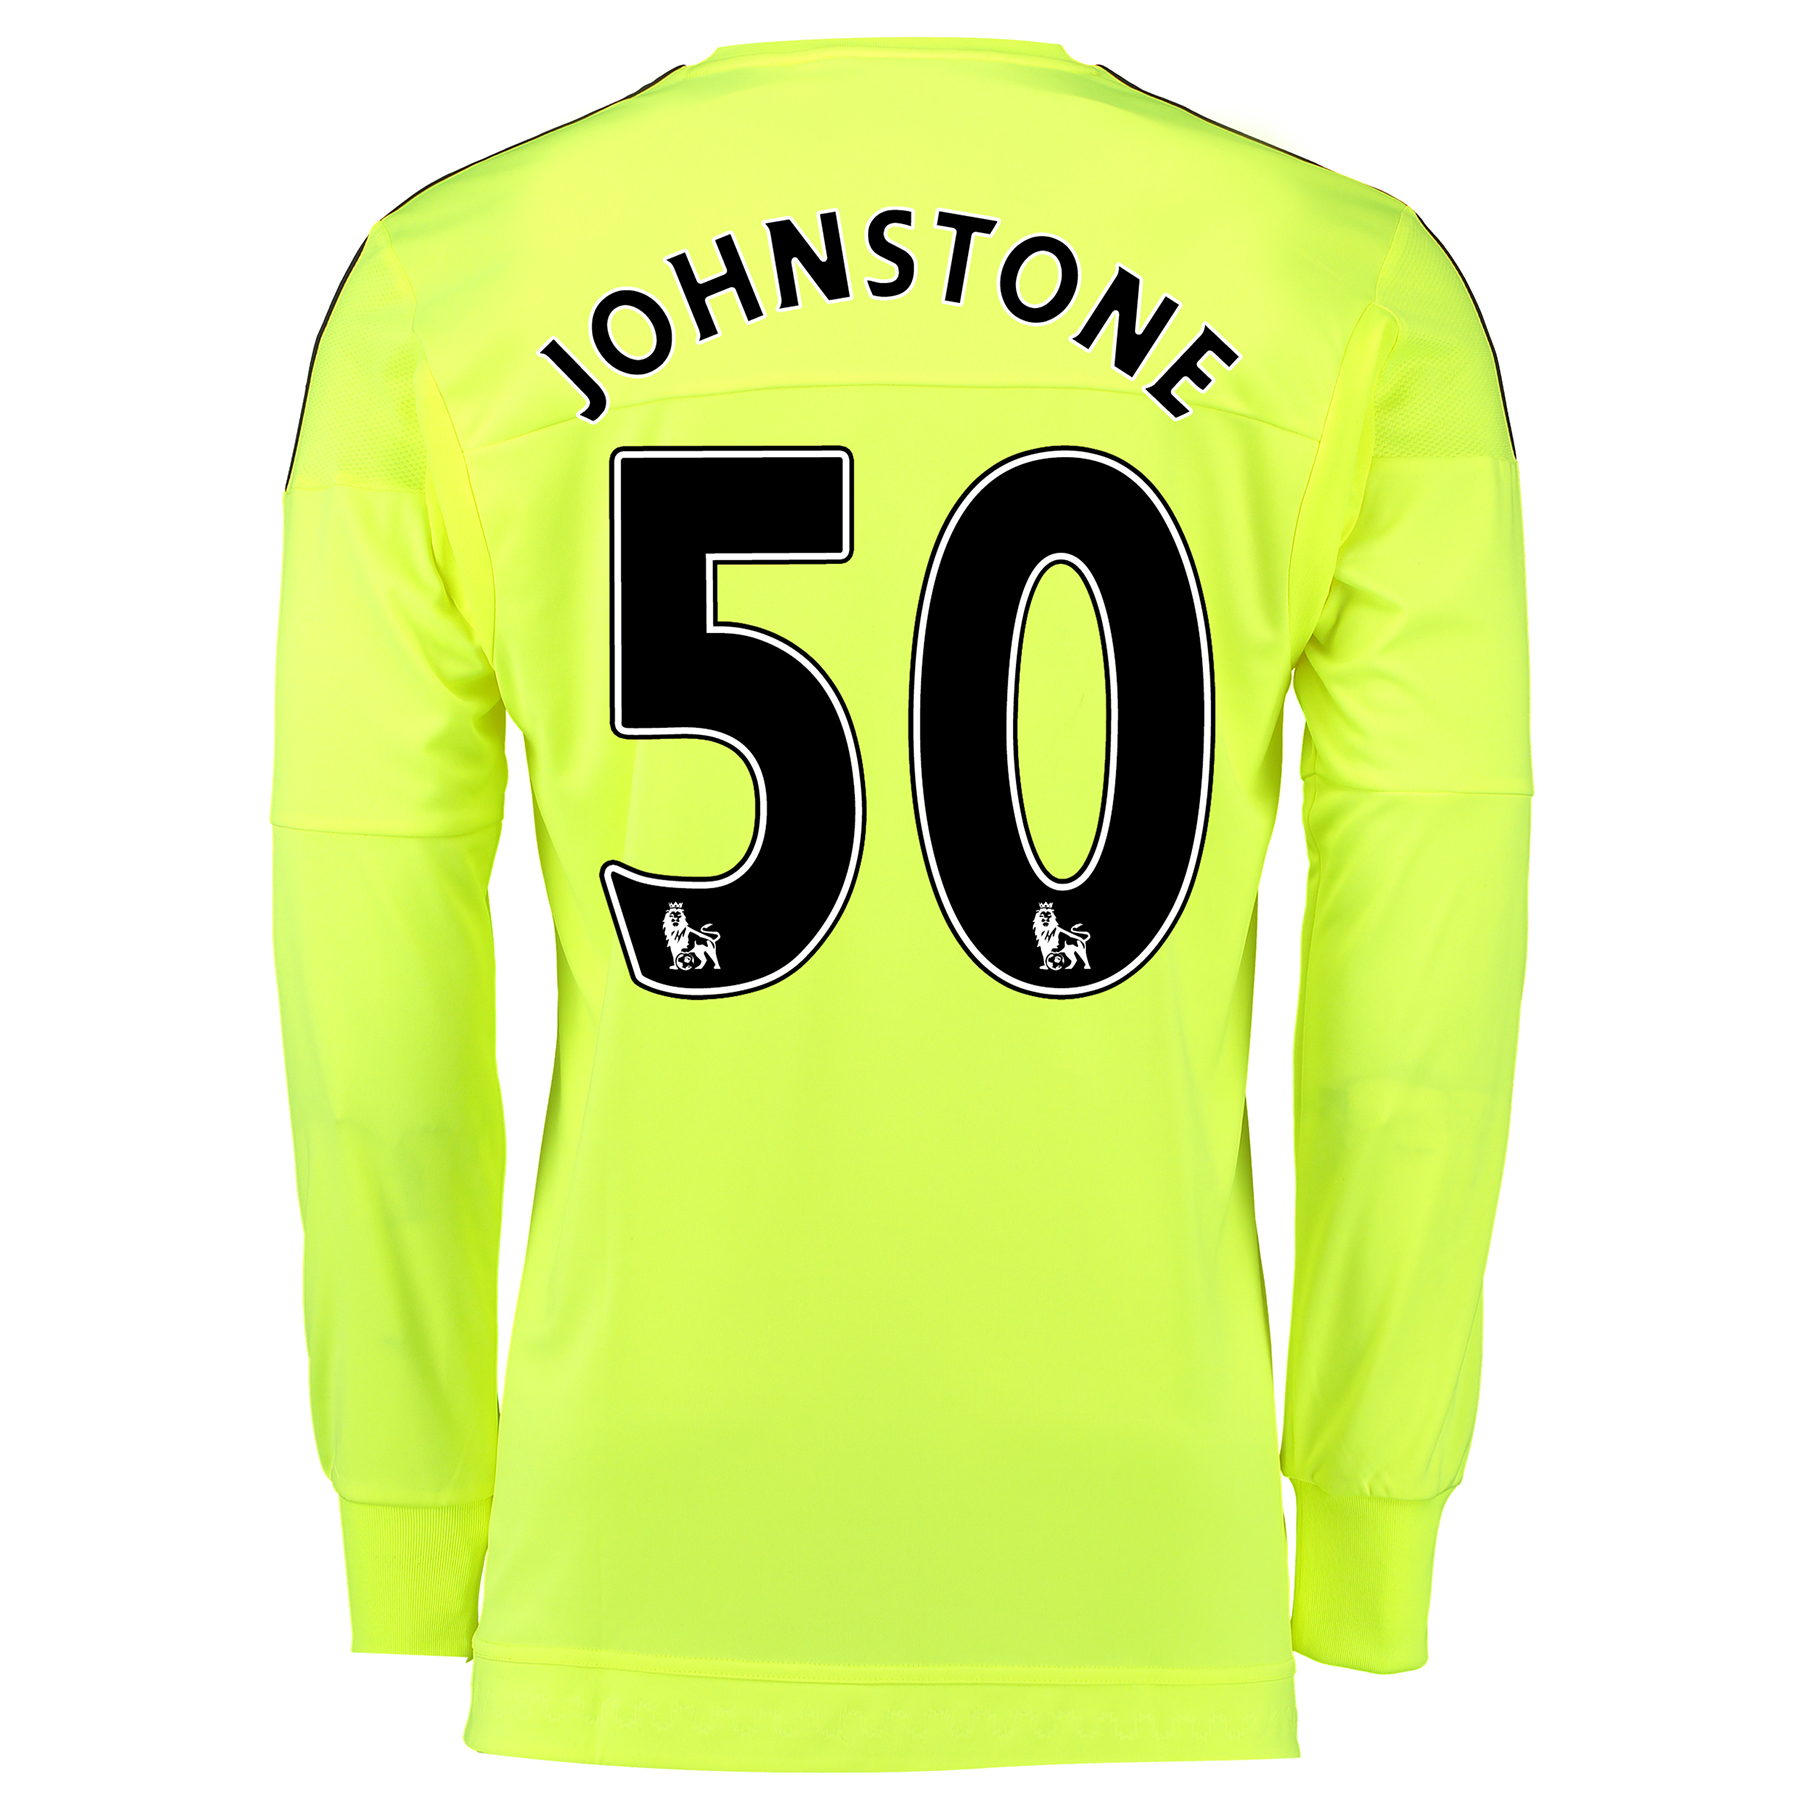 Manchester United Away Goalkeeper Shirt 2015/16 - Kids Yellow with Joh